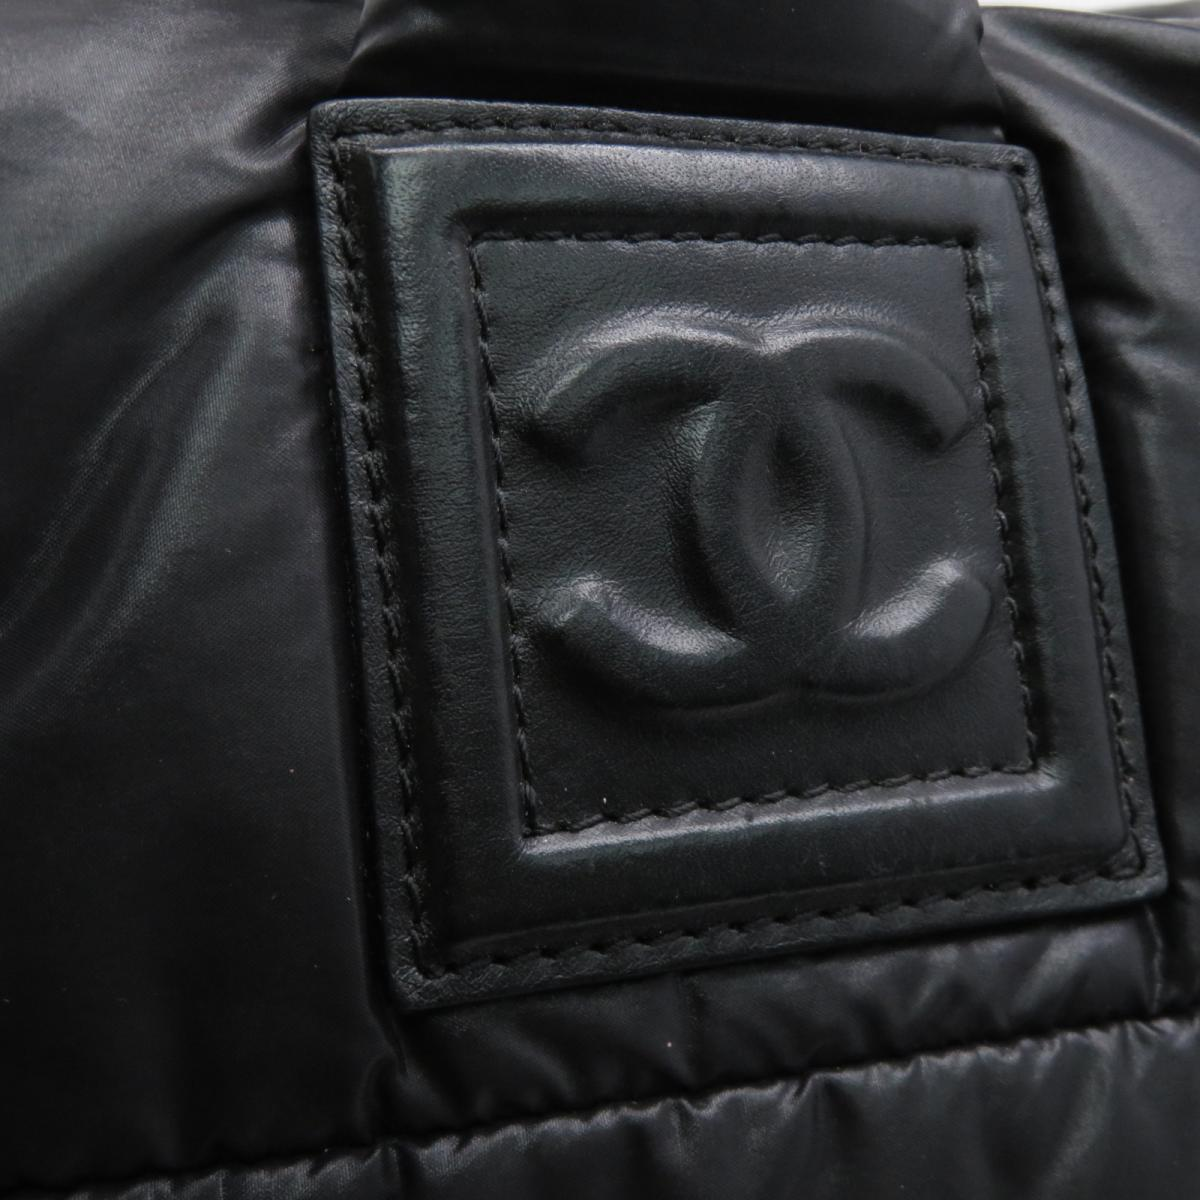 CHANEL CHANEL バッグ   尼龍Coco Cocoon手挽袋黑色